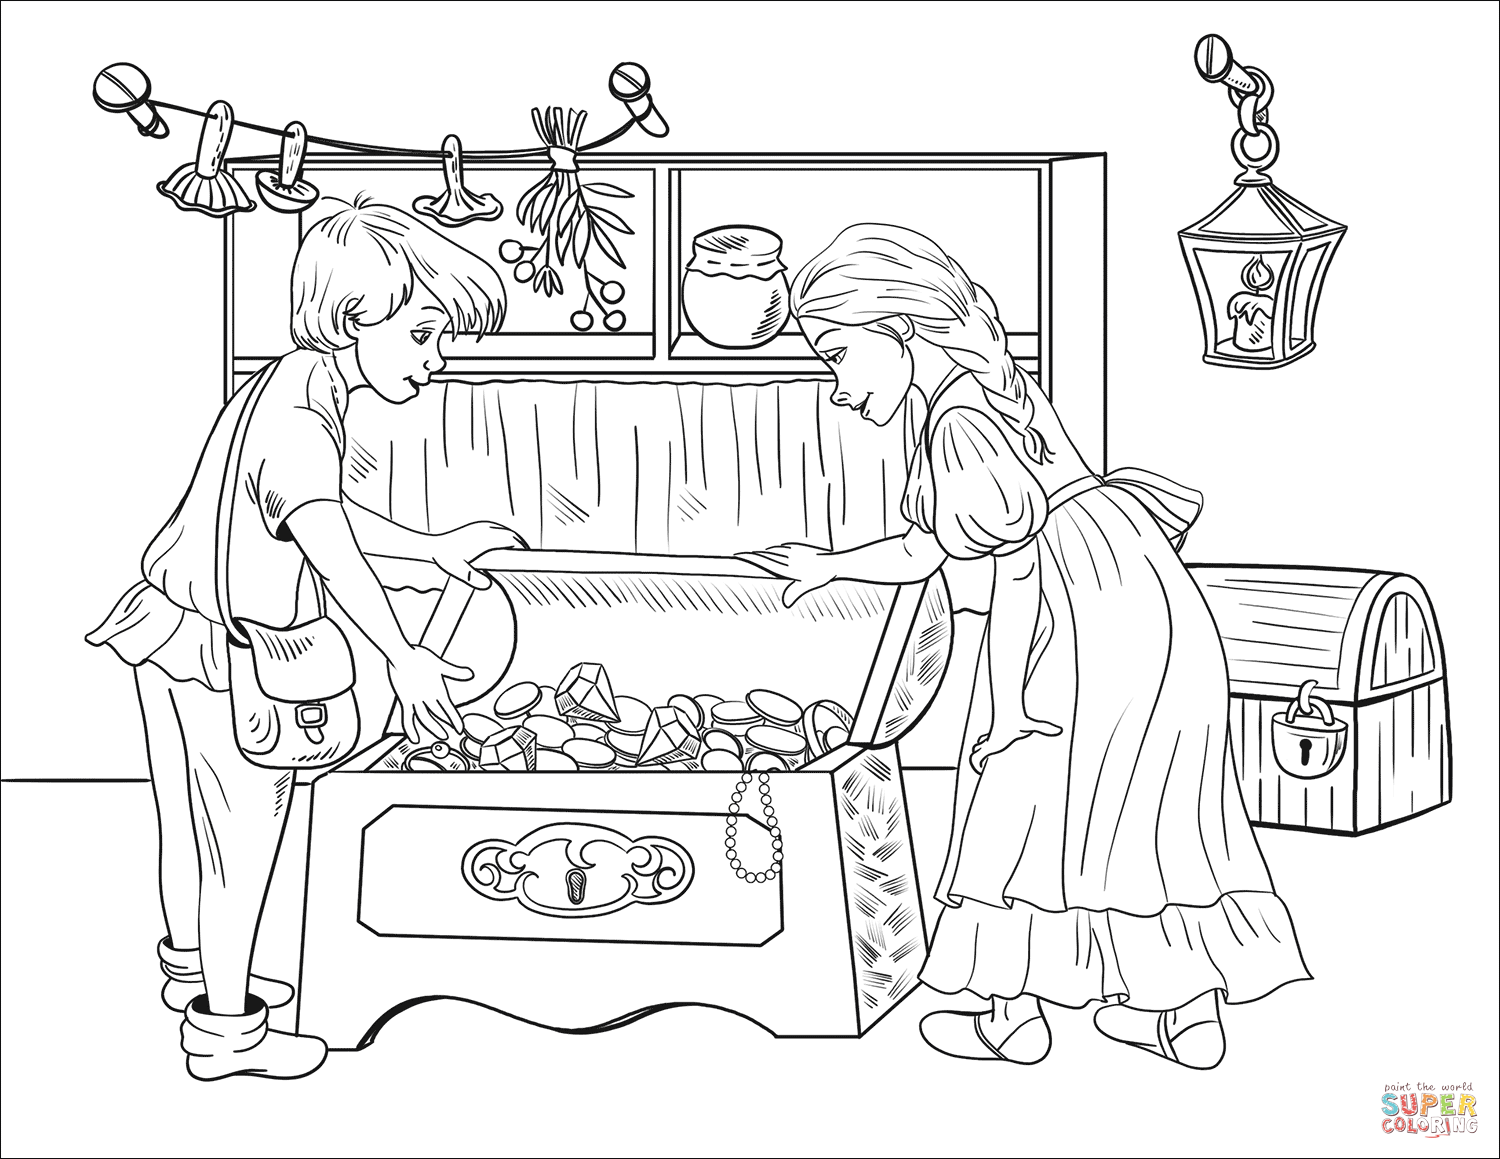 1500x1159 Hansel And Gretel Discover Chests Full Of Pearls And Jewels In